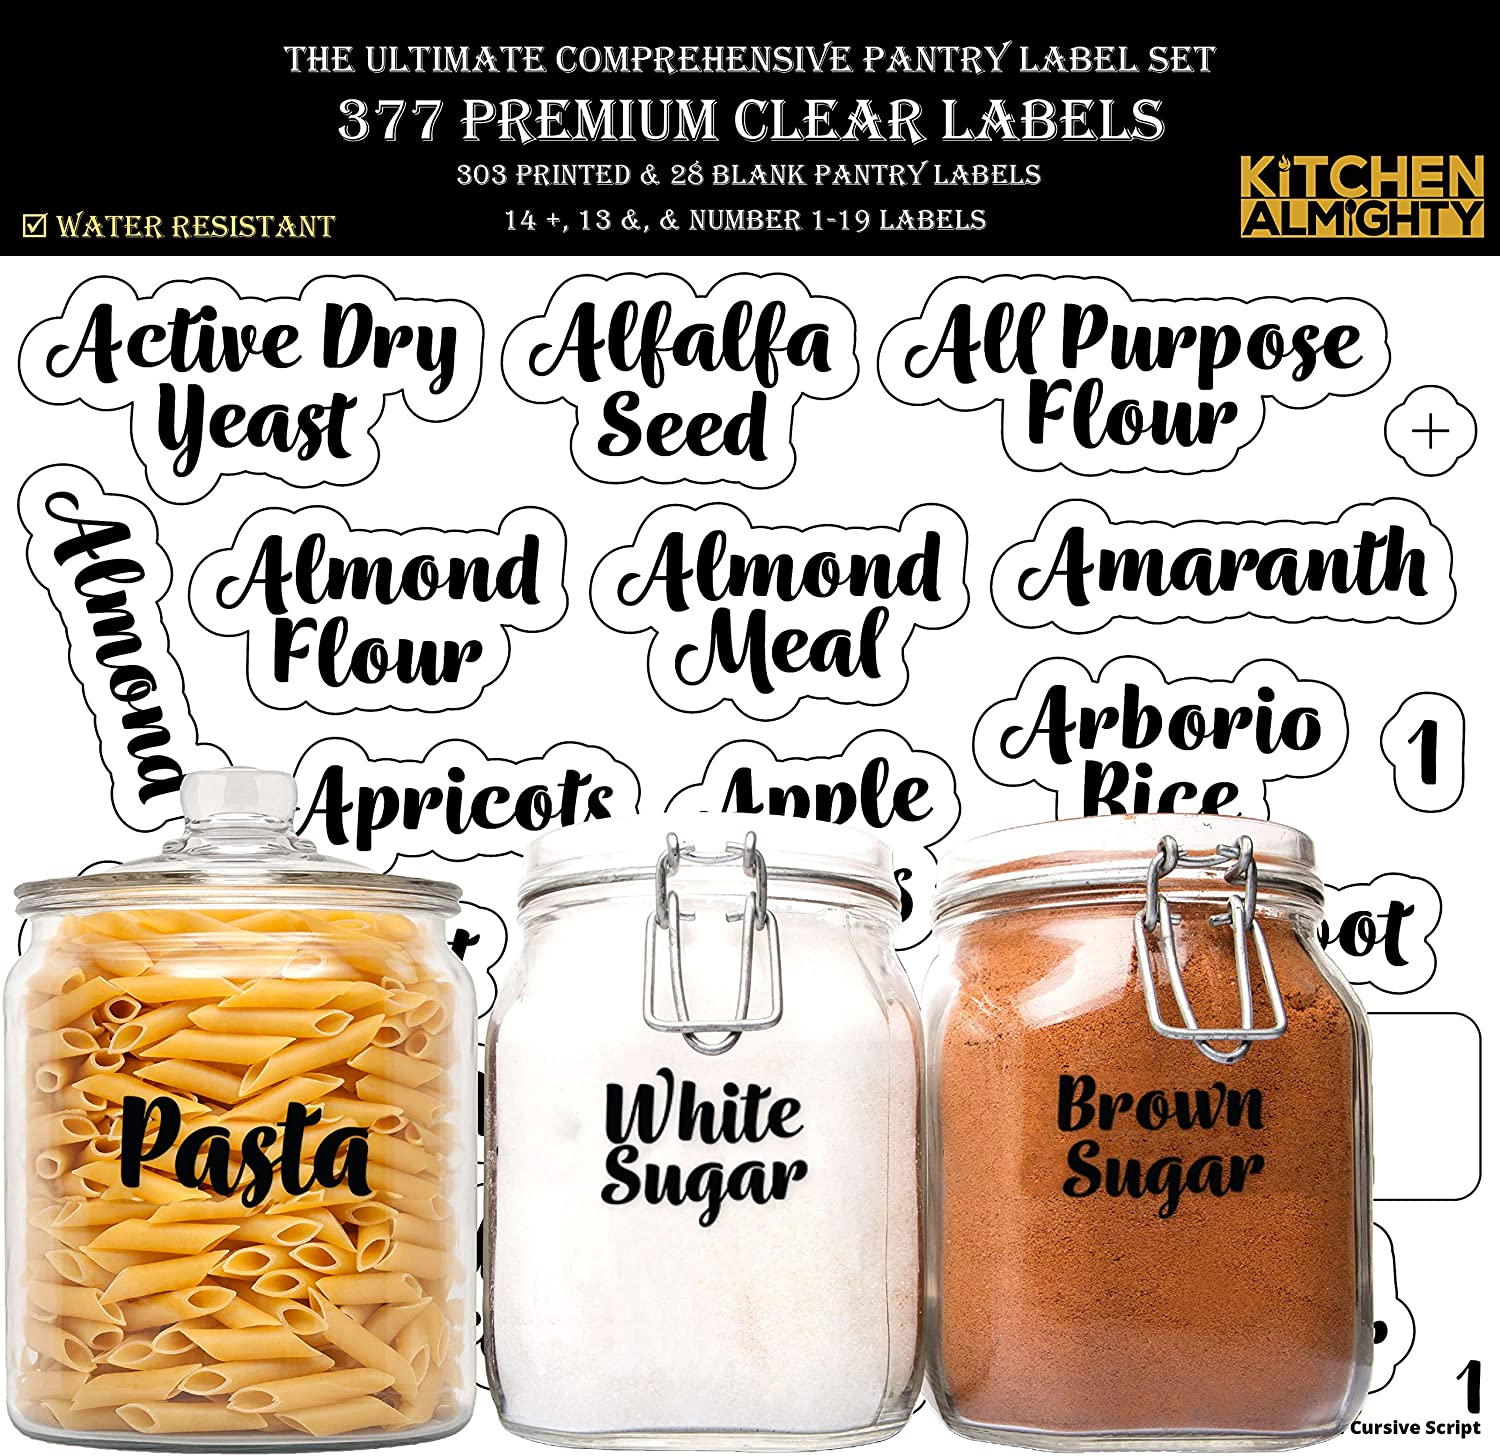 KITCHEN ALMIGHTY Pantry Labels: 377 Bold Cursive Gloss Clear Preprinted Water Resistant Complete Label Set to Organize Storage Containers, Jars & Canisters w/a Extra Write-on Sticker